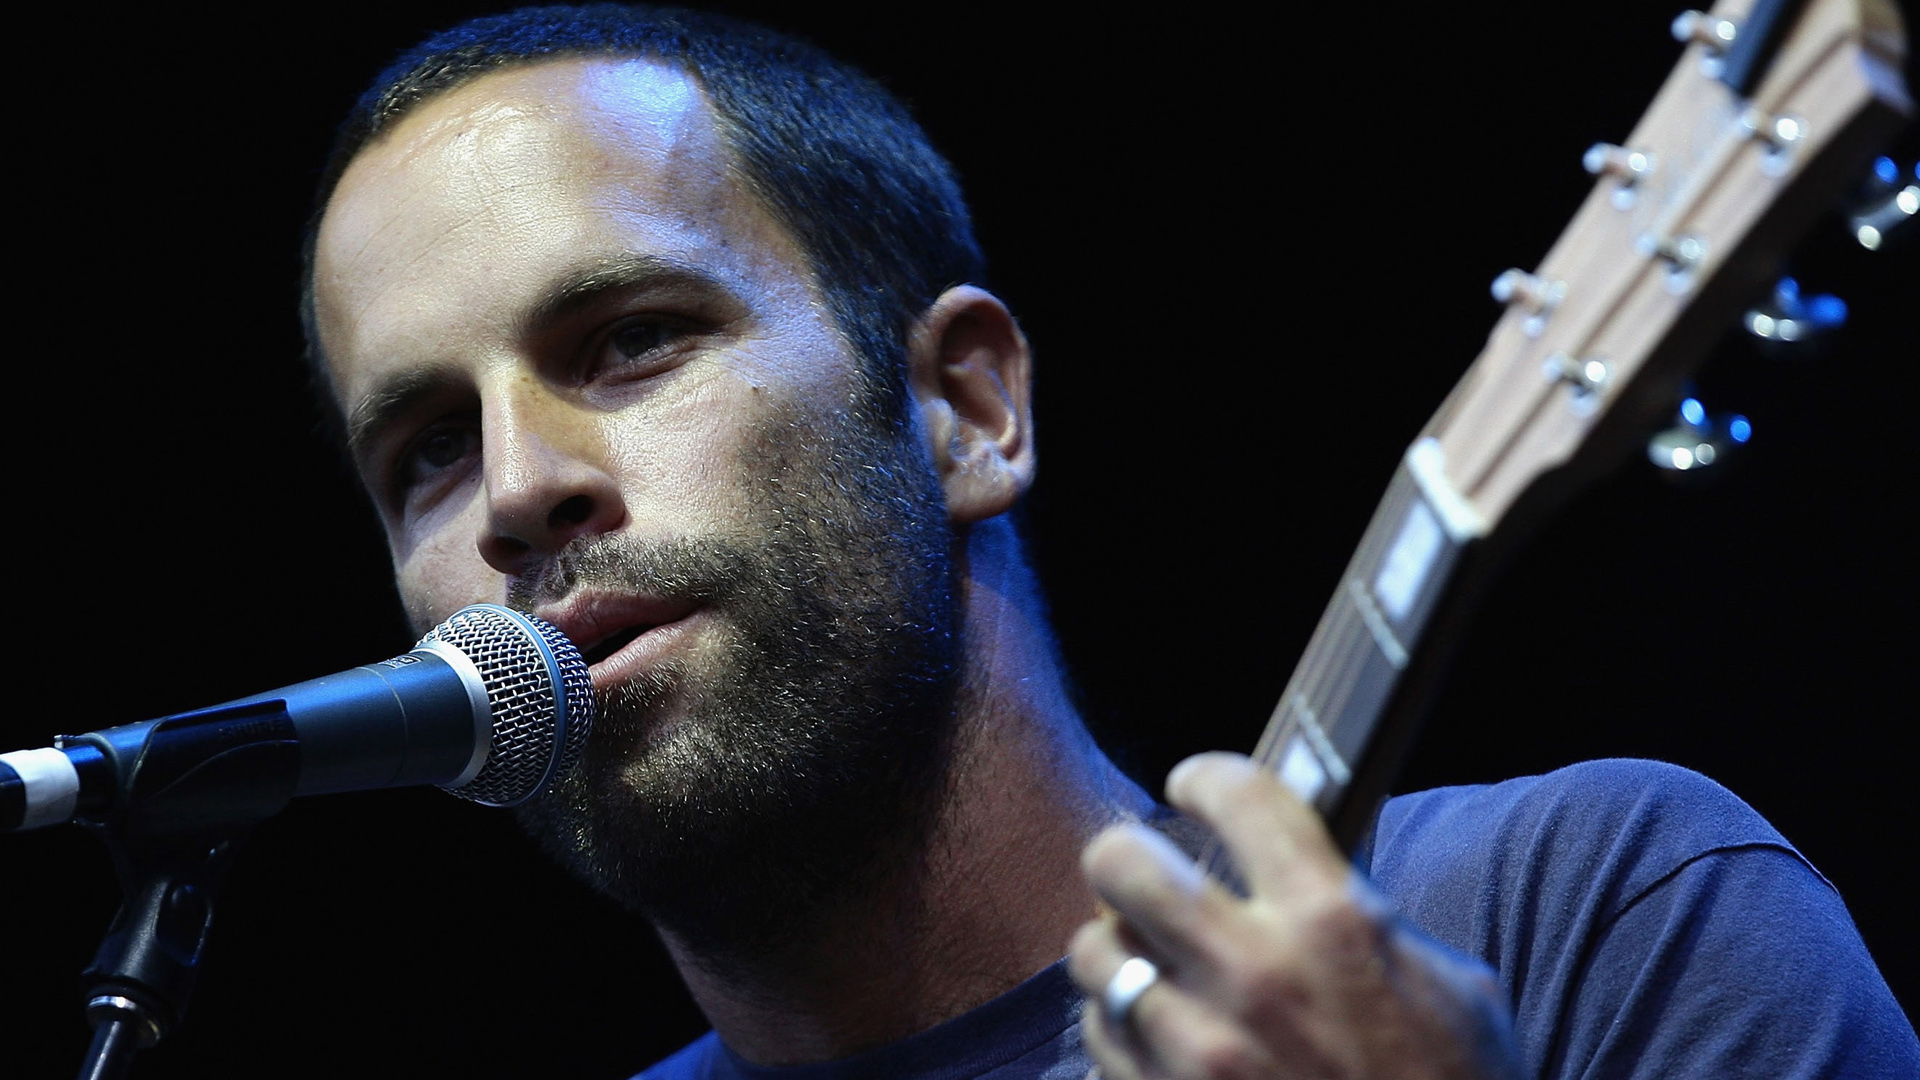 Jack johnson free music downloads.